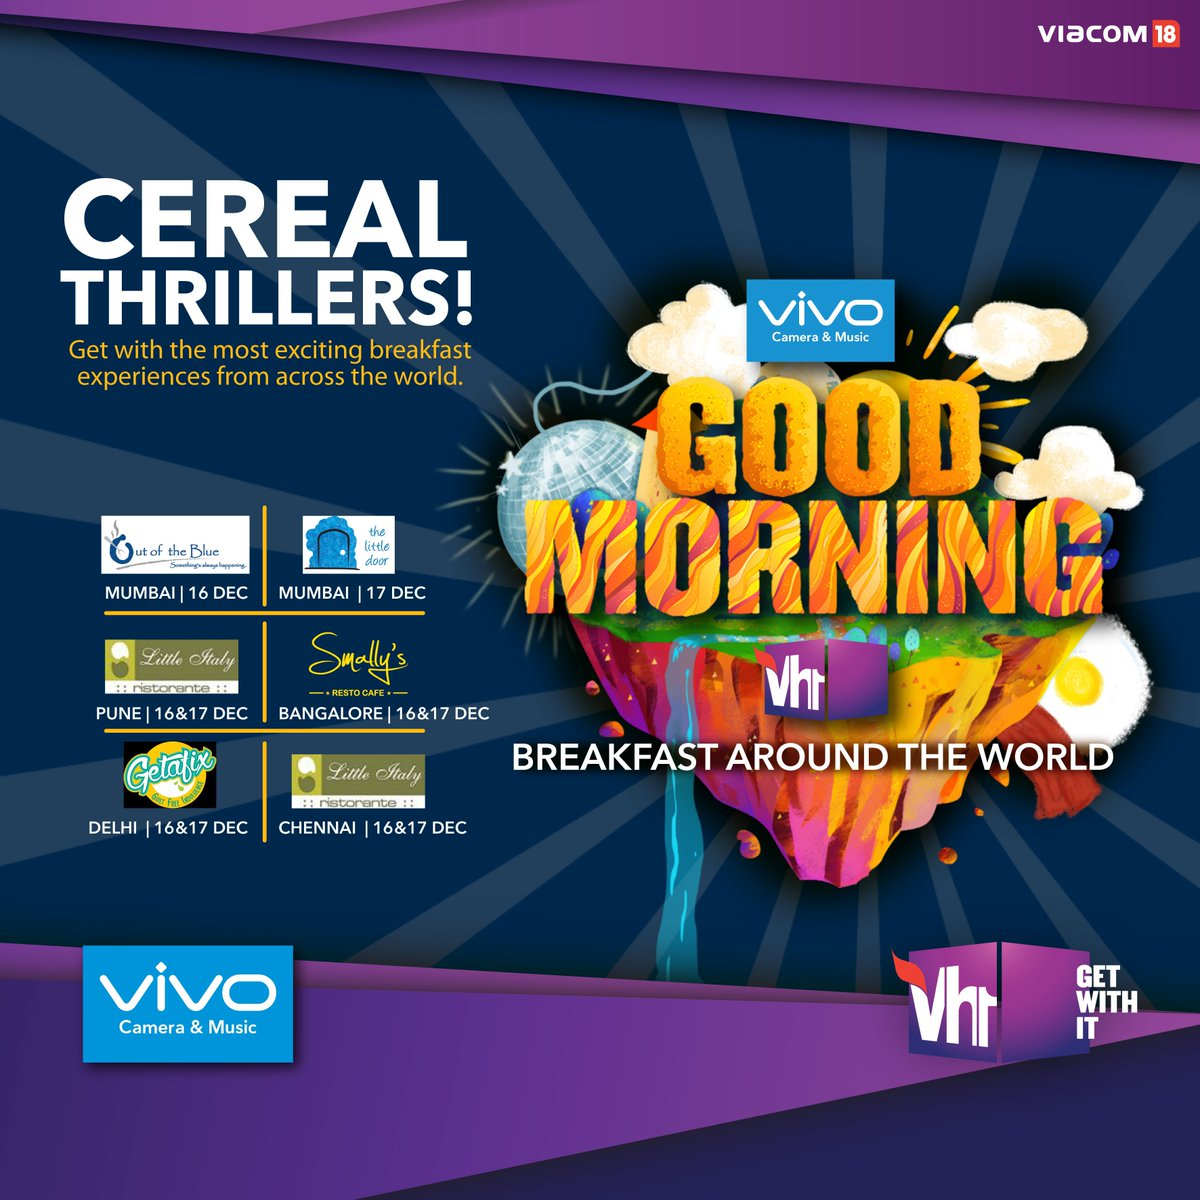 Get ready for the most exciting breakfast experiences from across the world because Cereal Thrillers are here! Pick your spot and be there for a culinary treat #GoodMorningvh1